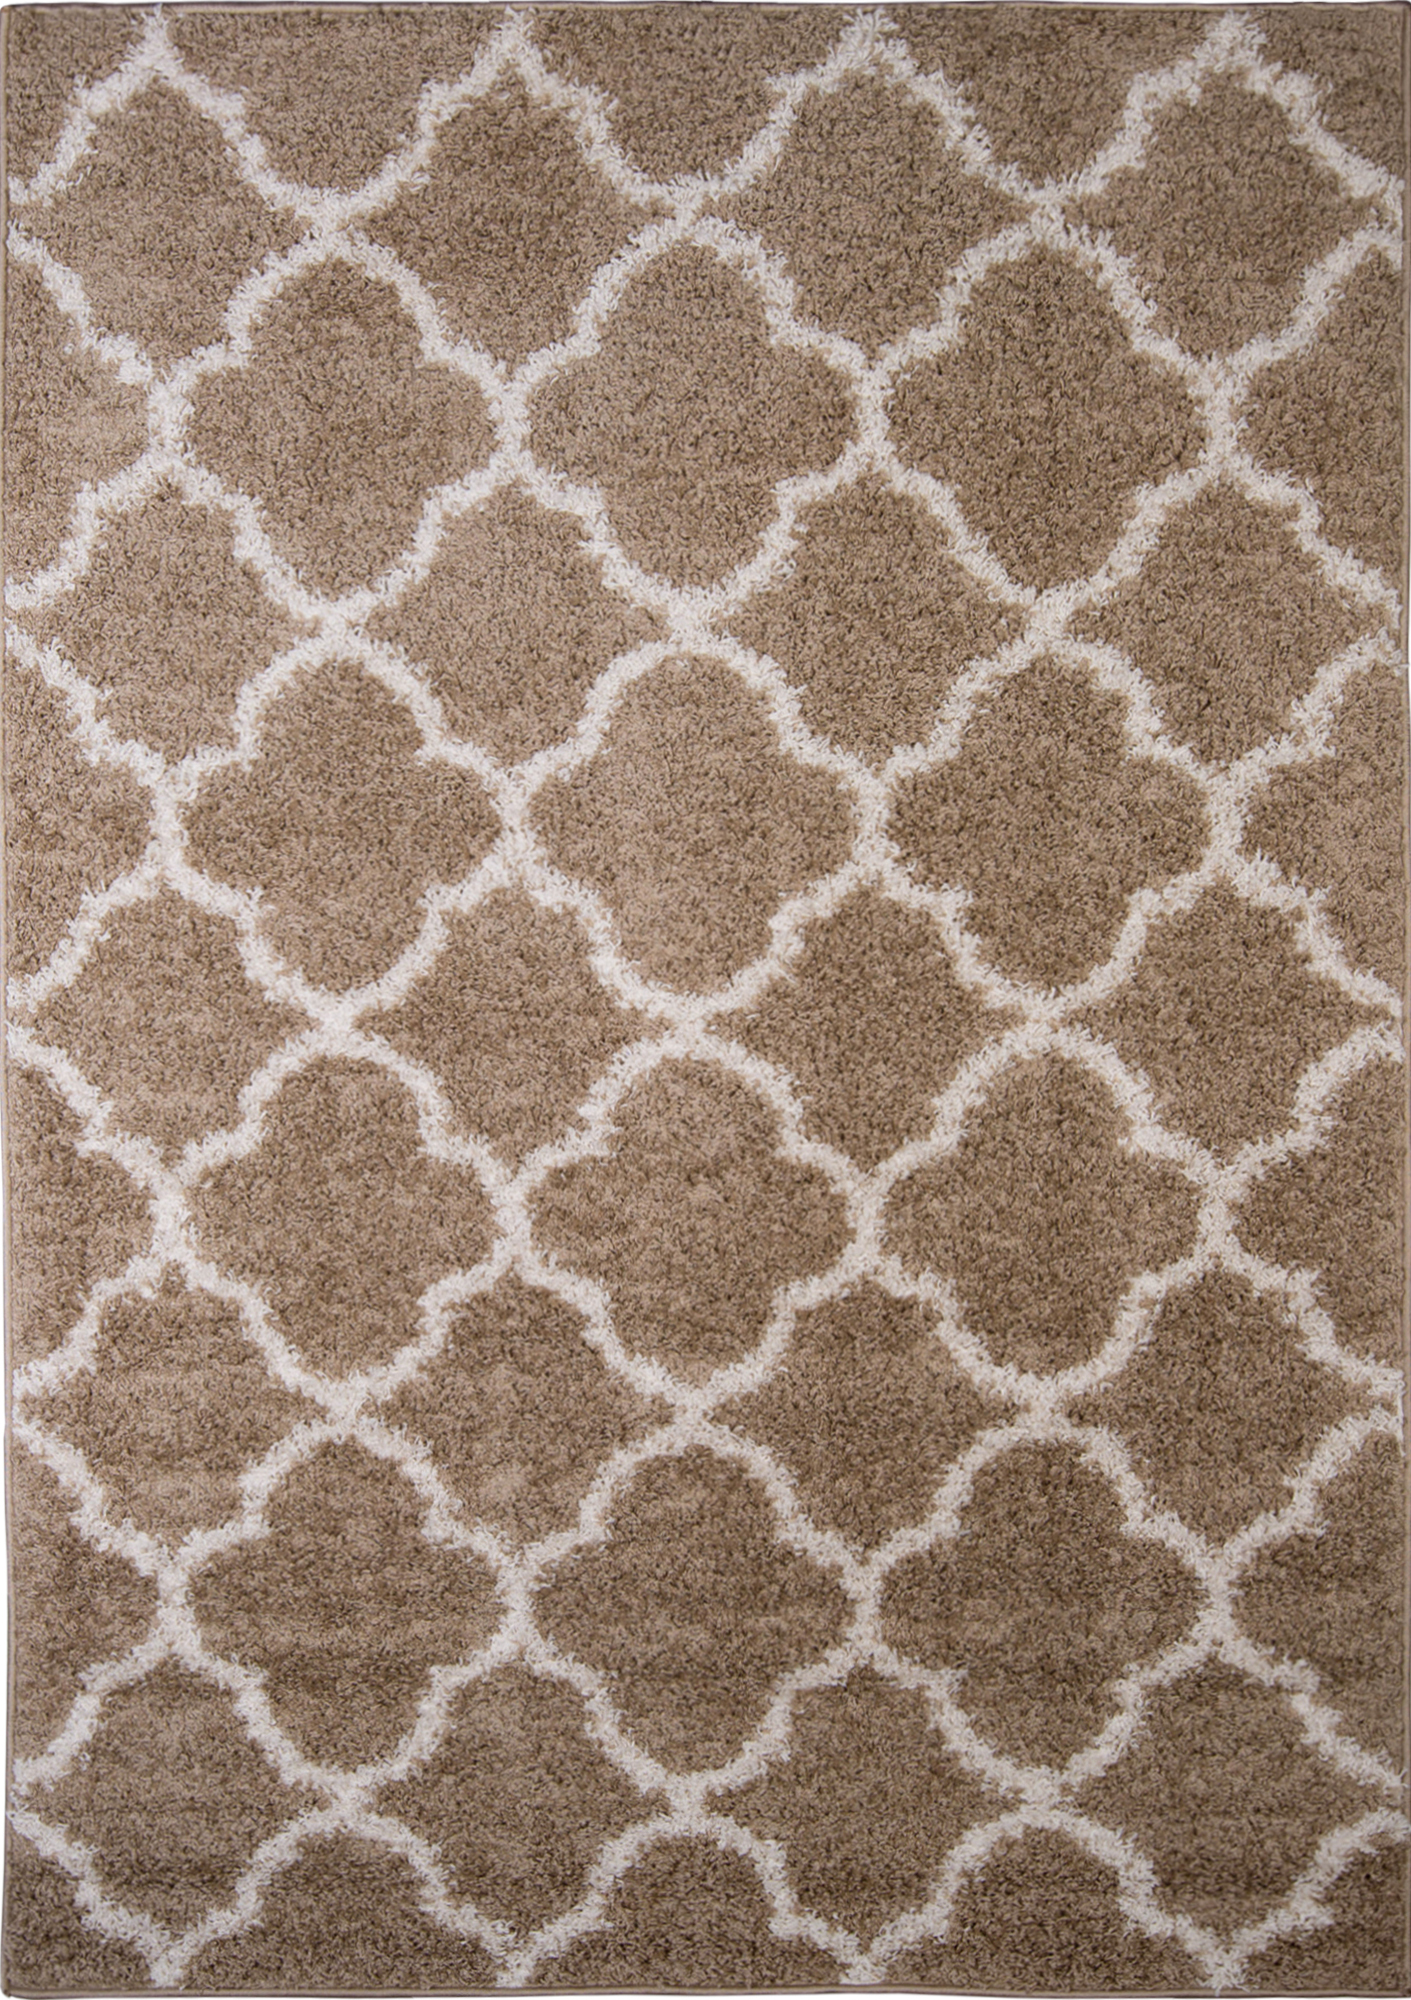 by rug sohome parlin rugs products market nicole area miller